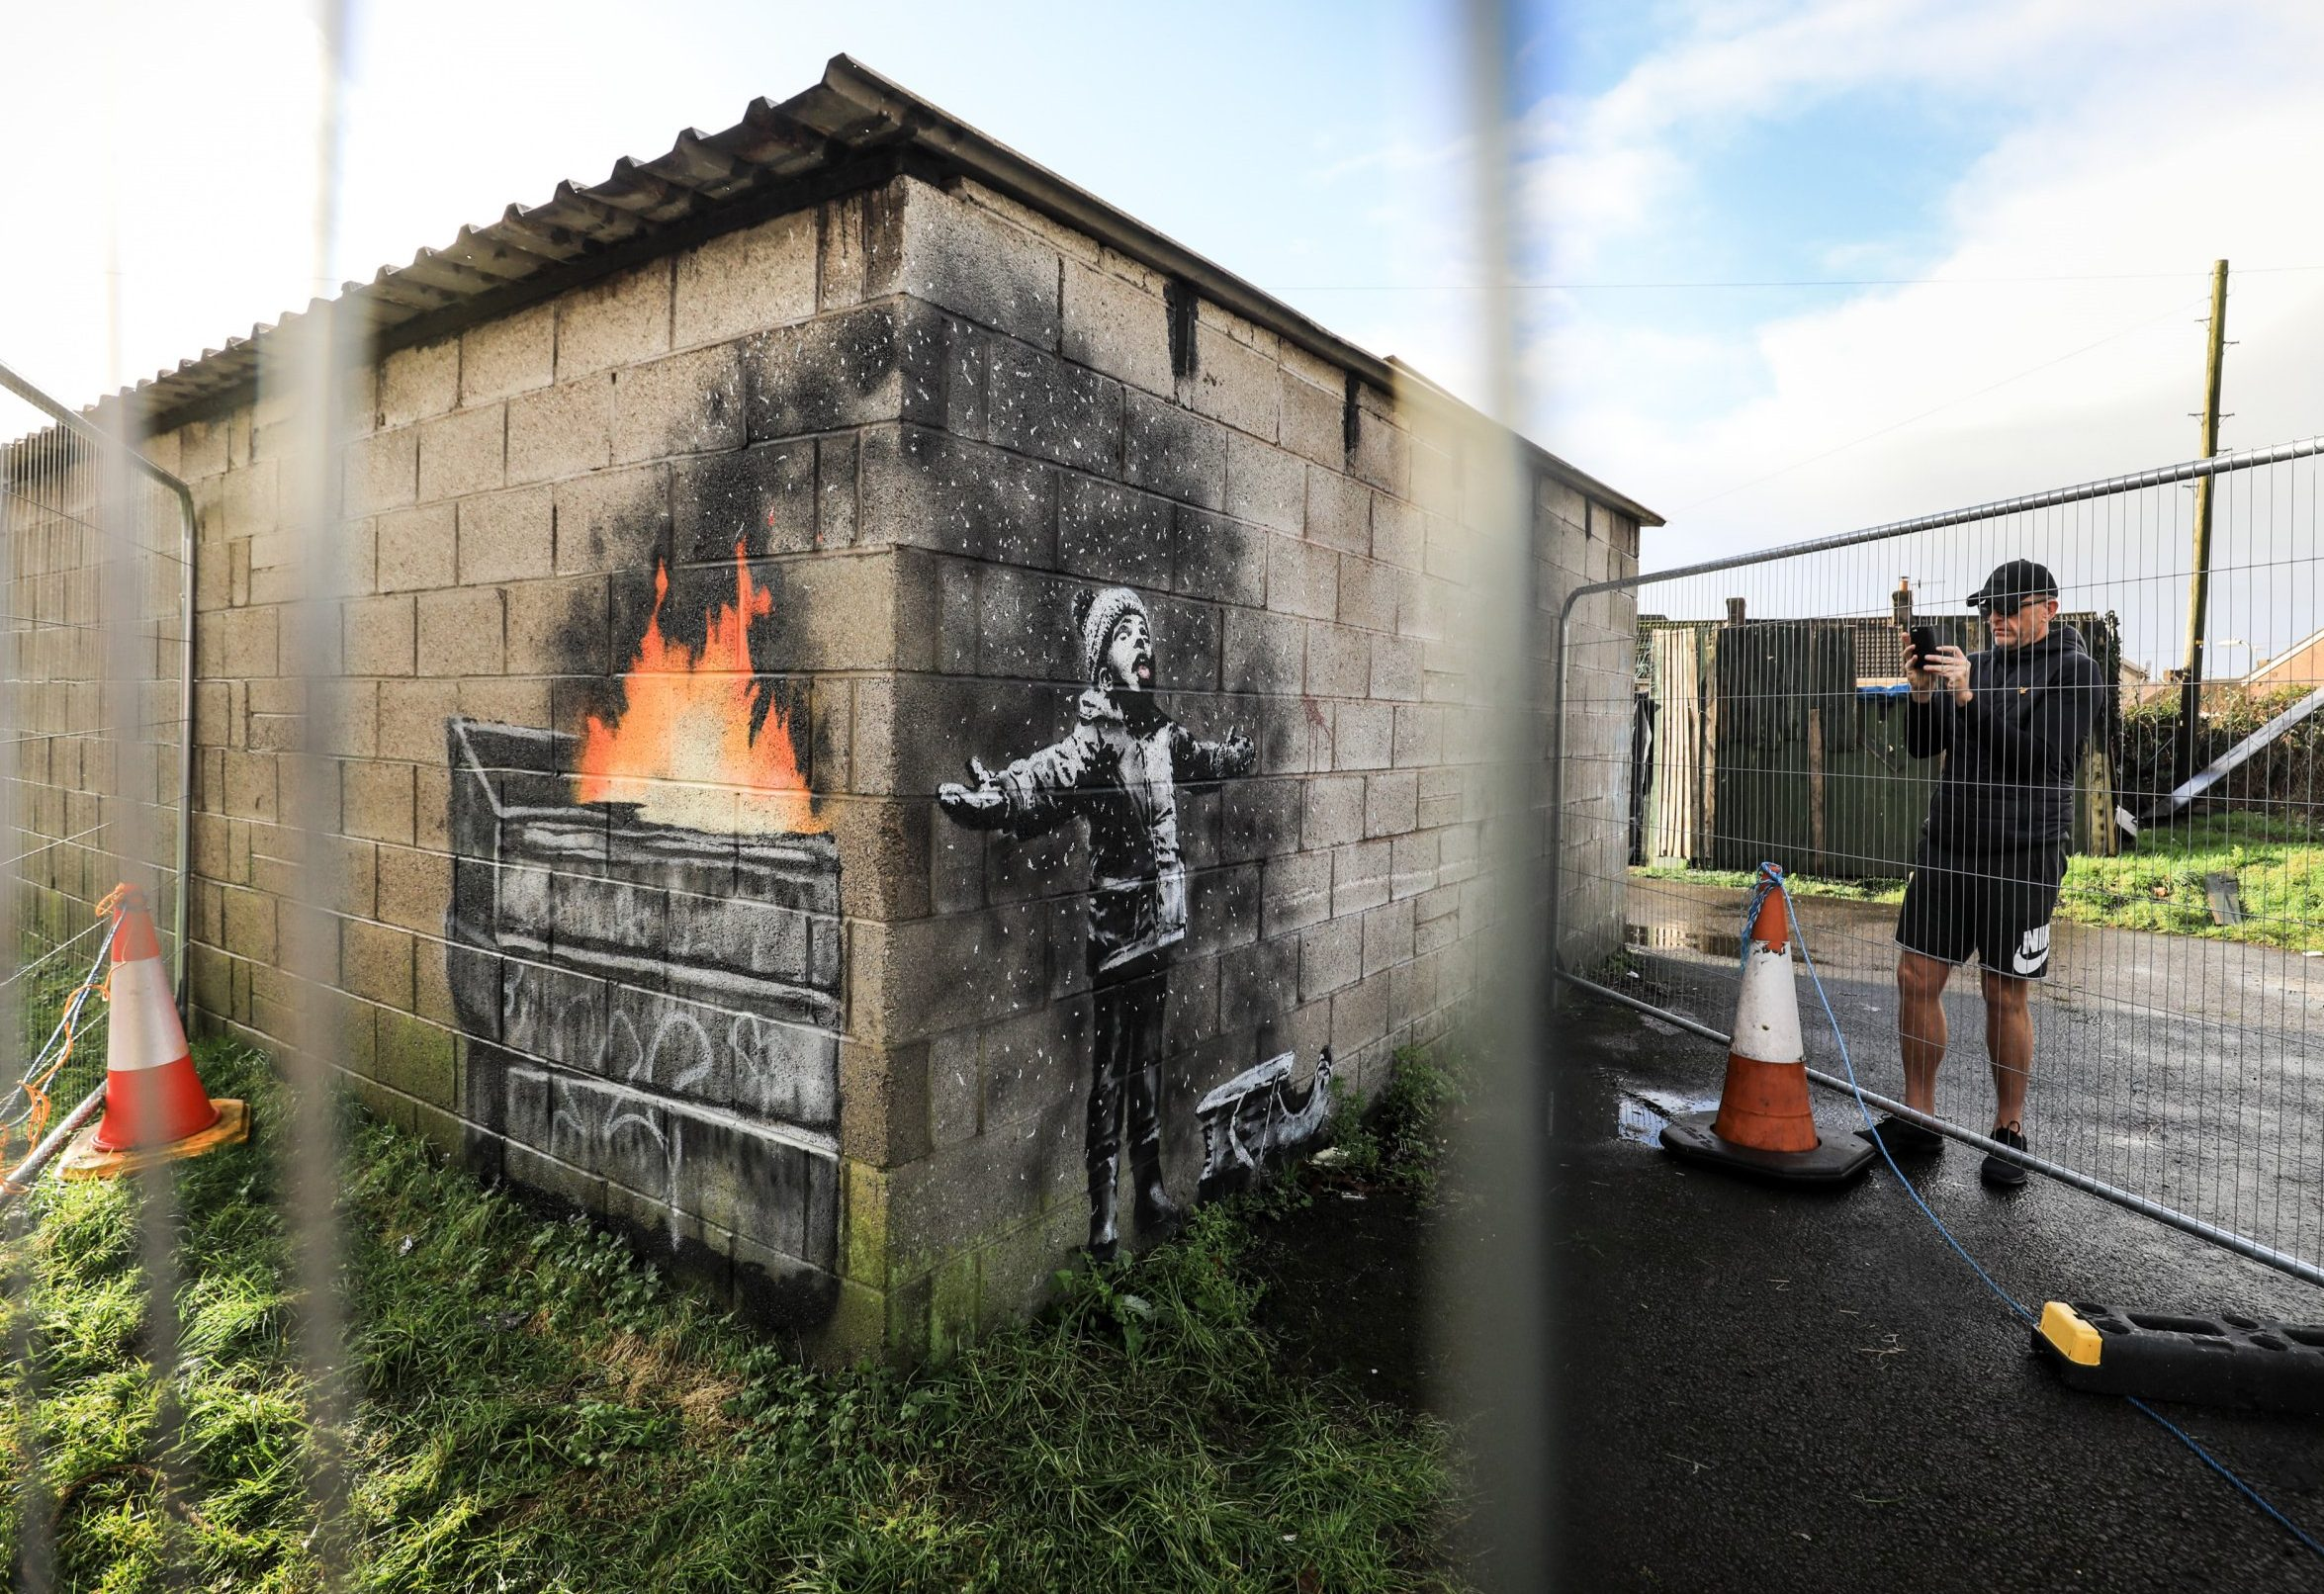 """PORT TALBOT, WALES - DECEMBER 20: People gather around fences that have been erected to protect the latest piece of artwork by the underground guerrilla artist Banksy on December 20, 2018 in Port Talbot, Wales. The British graffiti artist who keeps his identity a secret, confirmed yesterday that the artwork was his using his verified Instagram account to announce """"Season's greetings"""" with a video of the artwork in Port Talbot. (Photo by Matt Cardy/Getty Images) *** BESTPIX ***"""